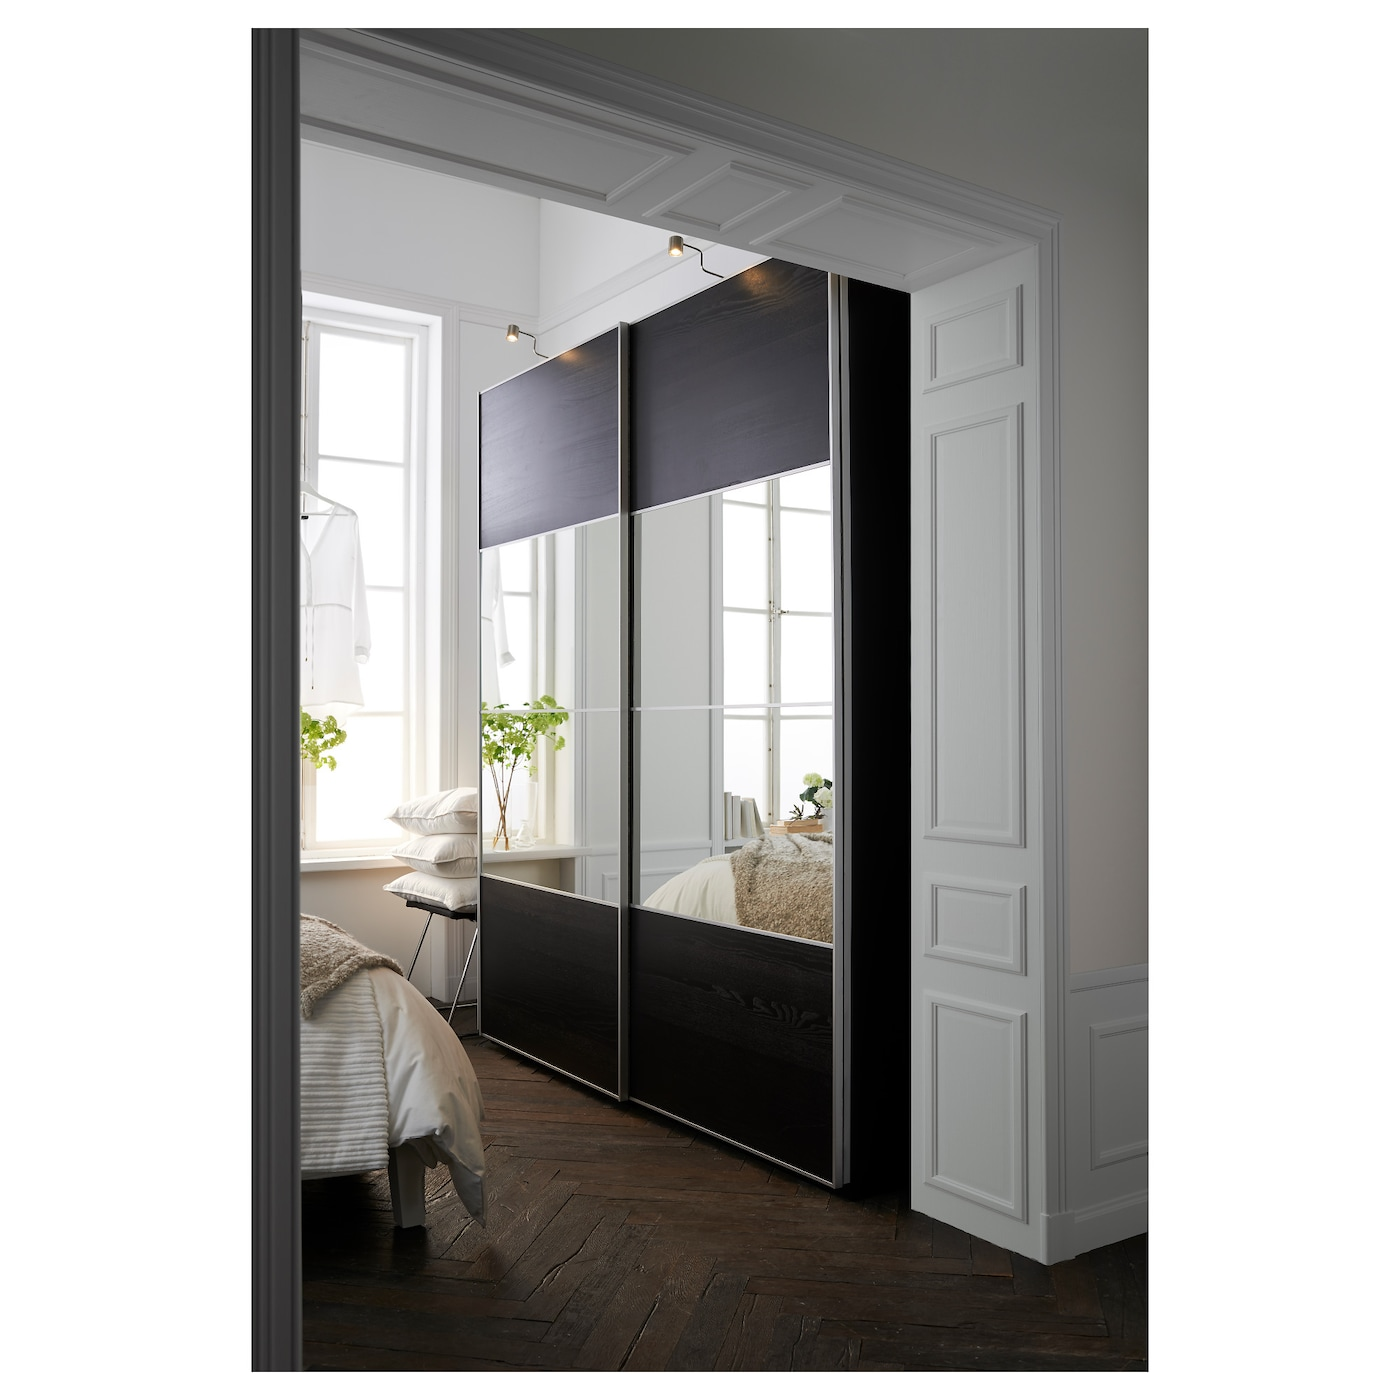 pax wardrobe black brown auli ilseng 200 x 66 x 236 cm ikea. Black Bedroom Furniture Sets. Home Design Ideas